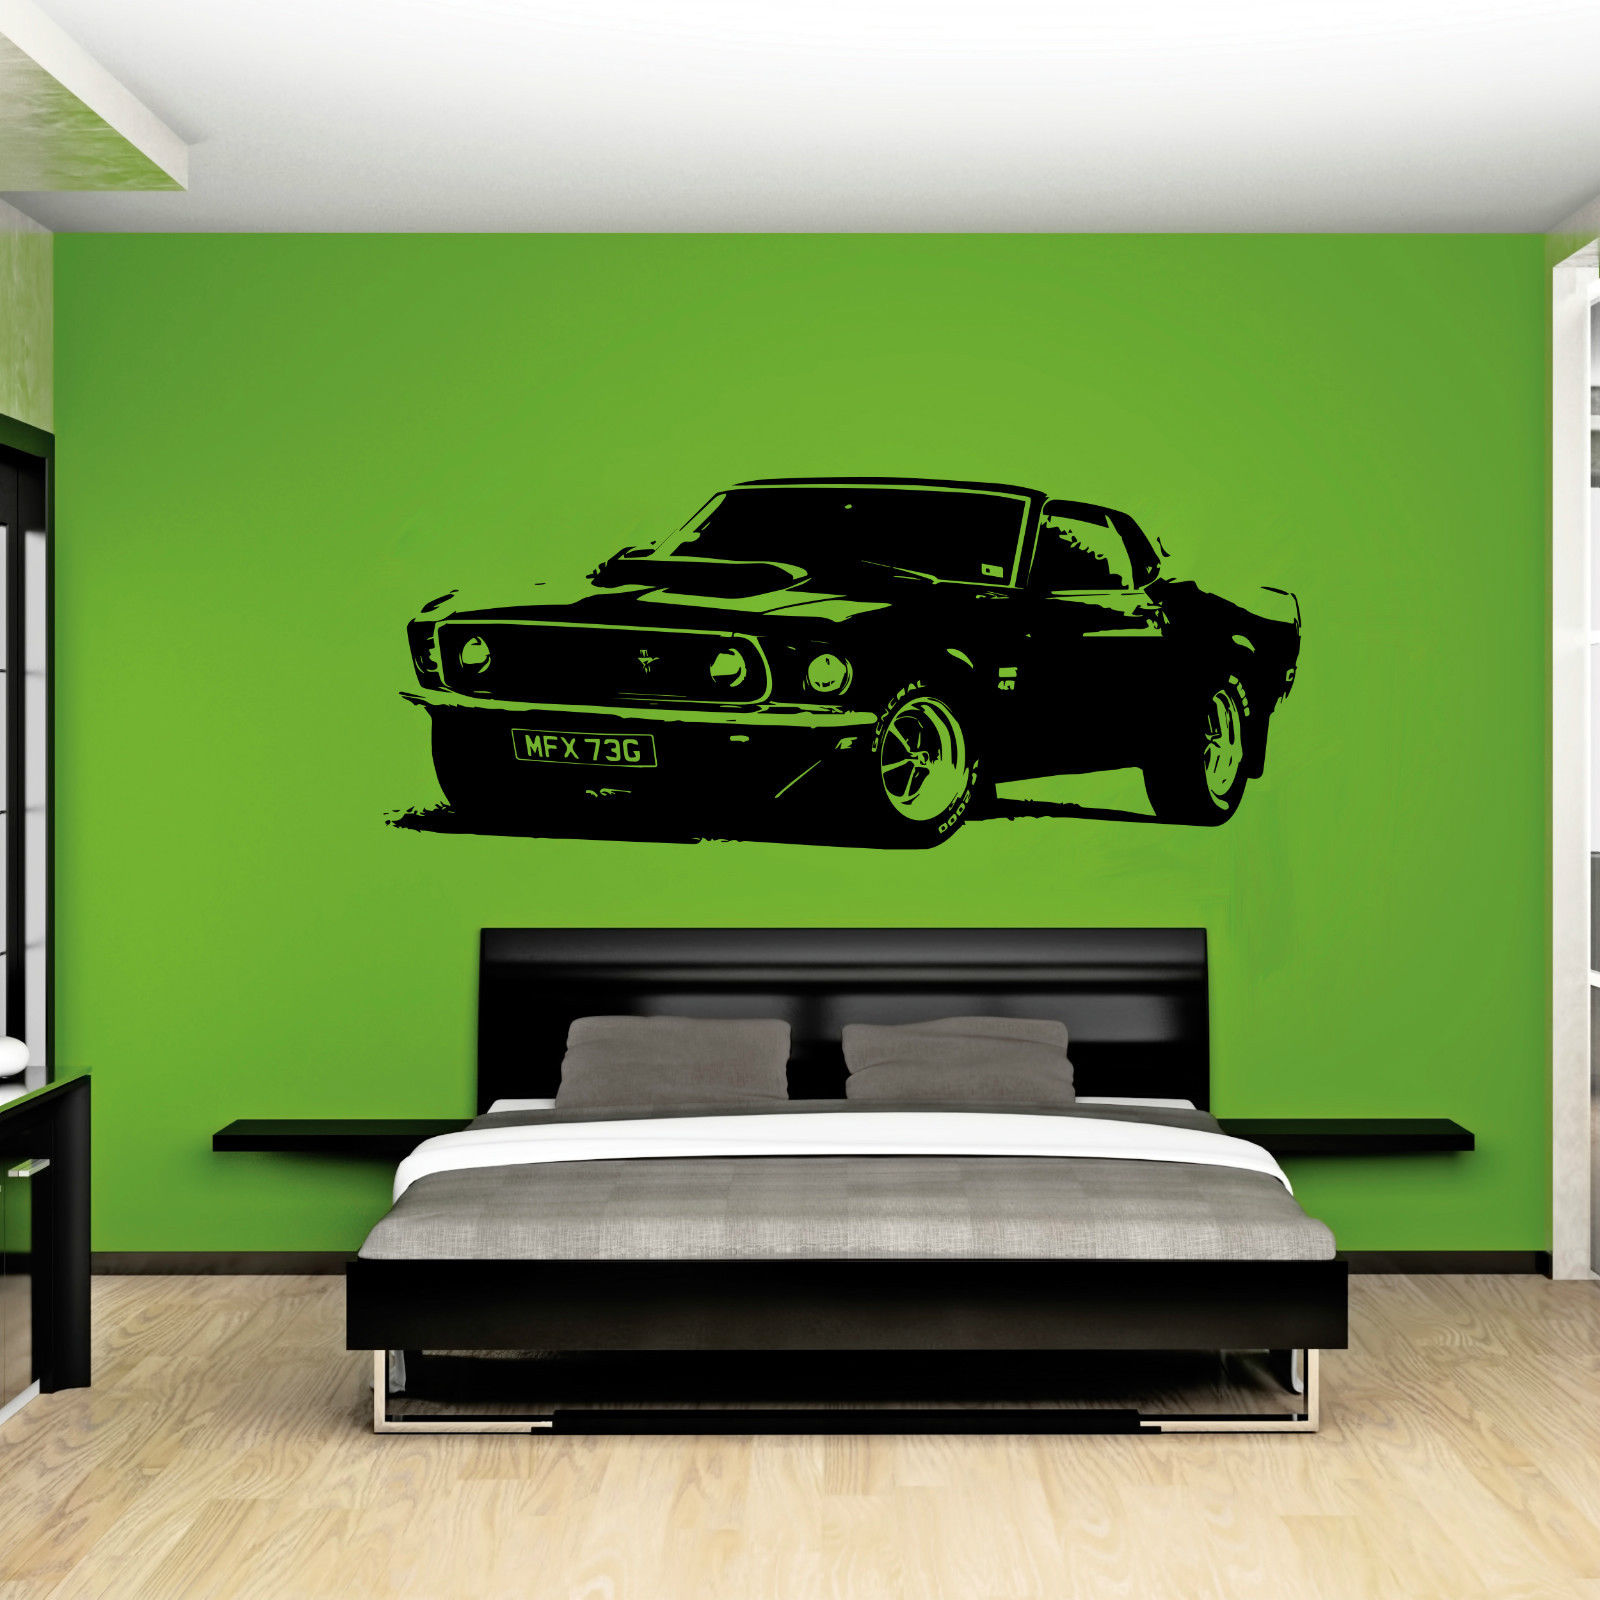 Zn W211 Xl Large Car Ford Mustang 1969 Muscle Free Squeegee Wall Art Decal